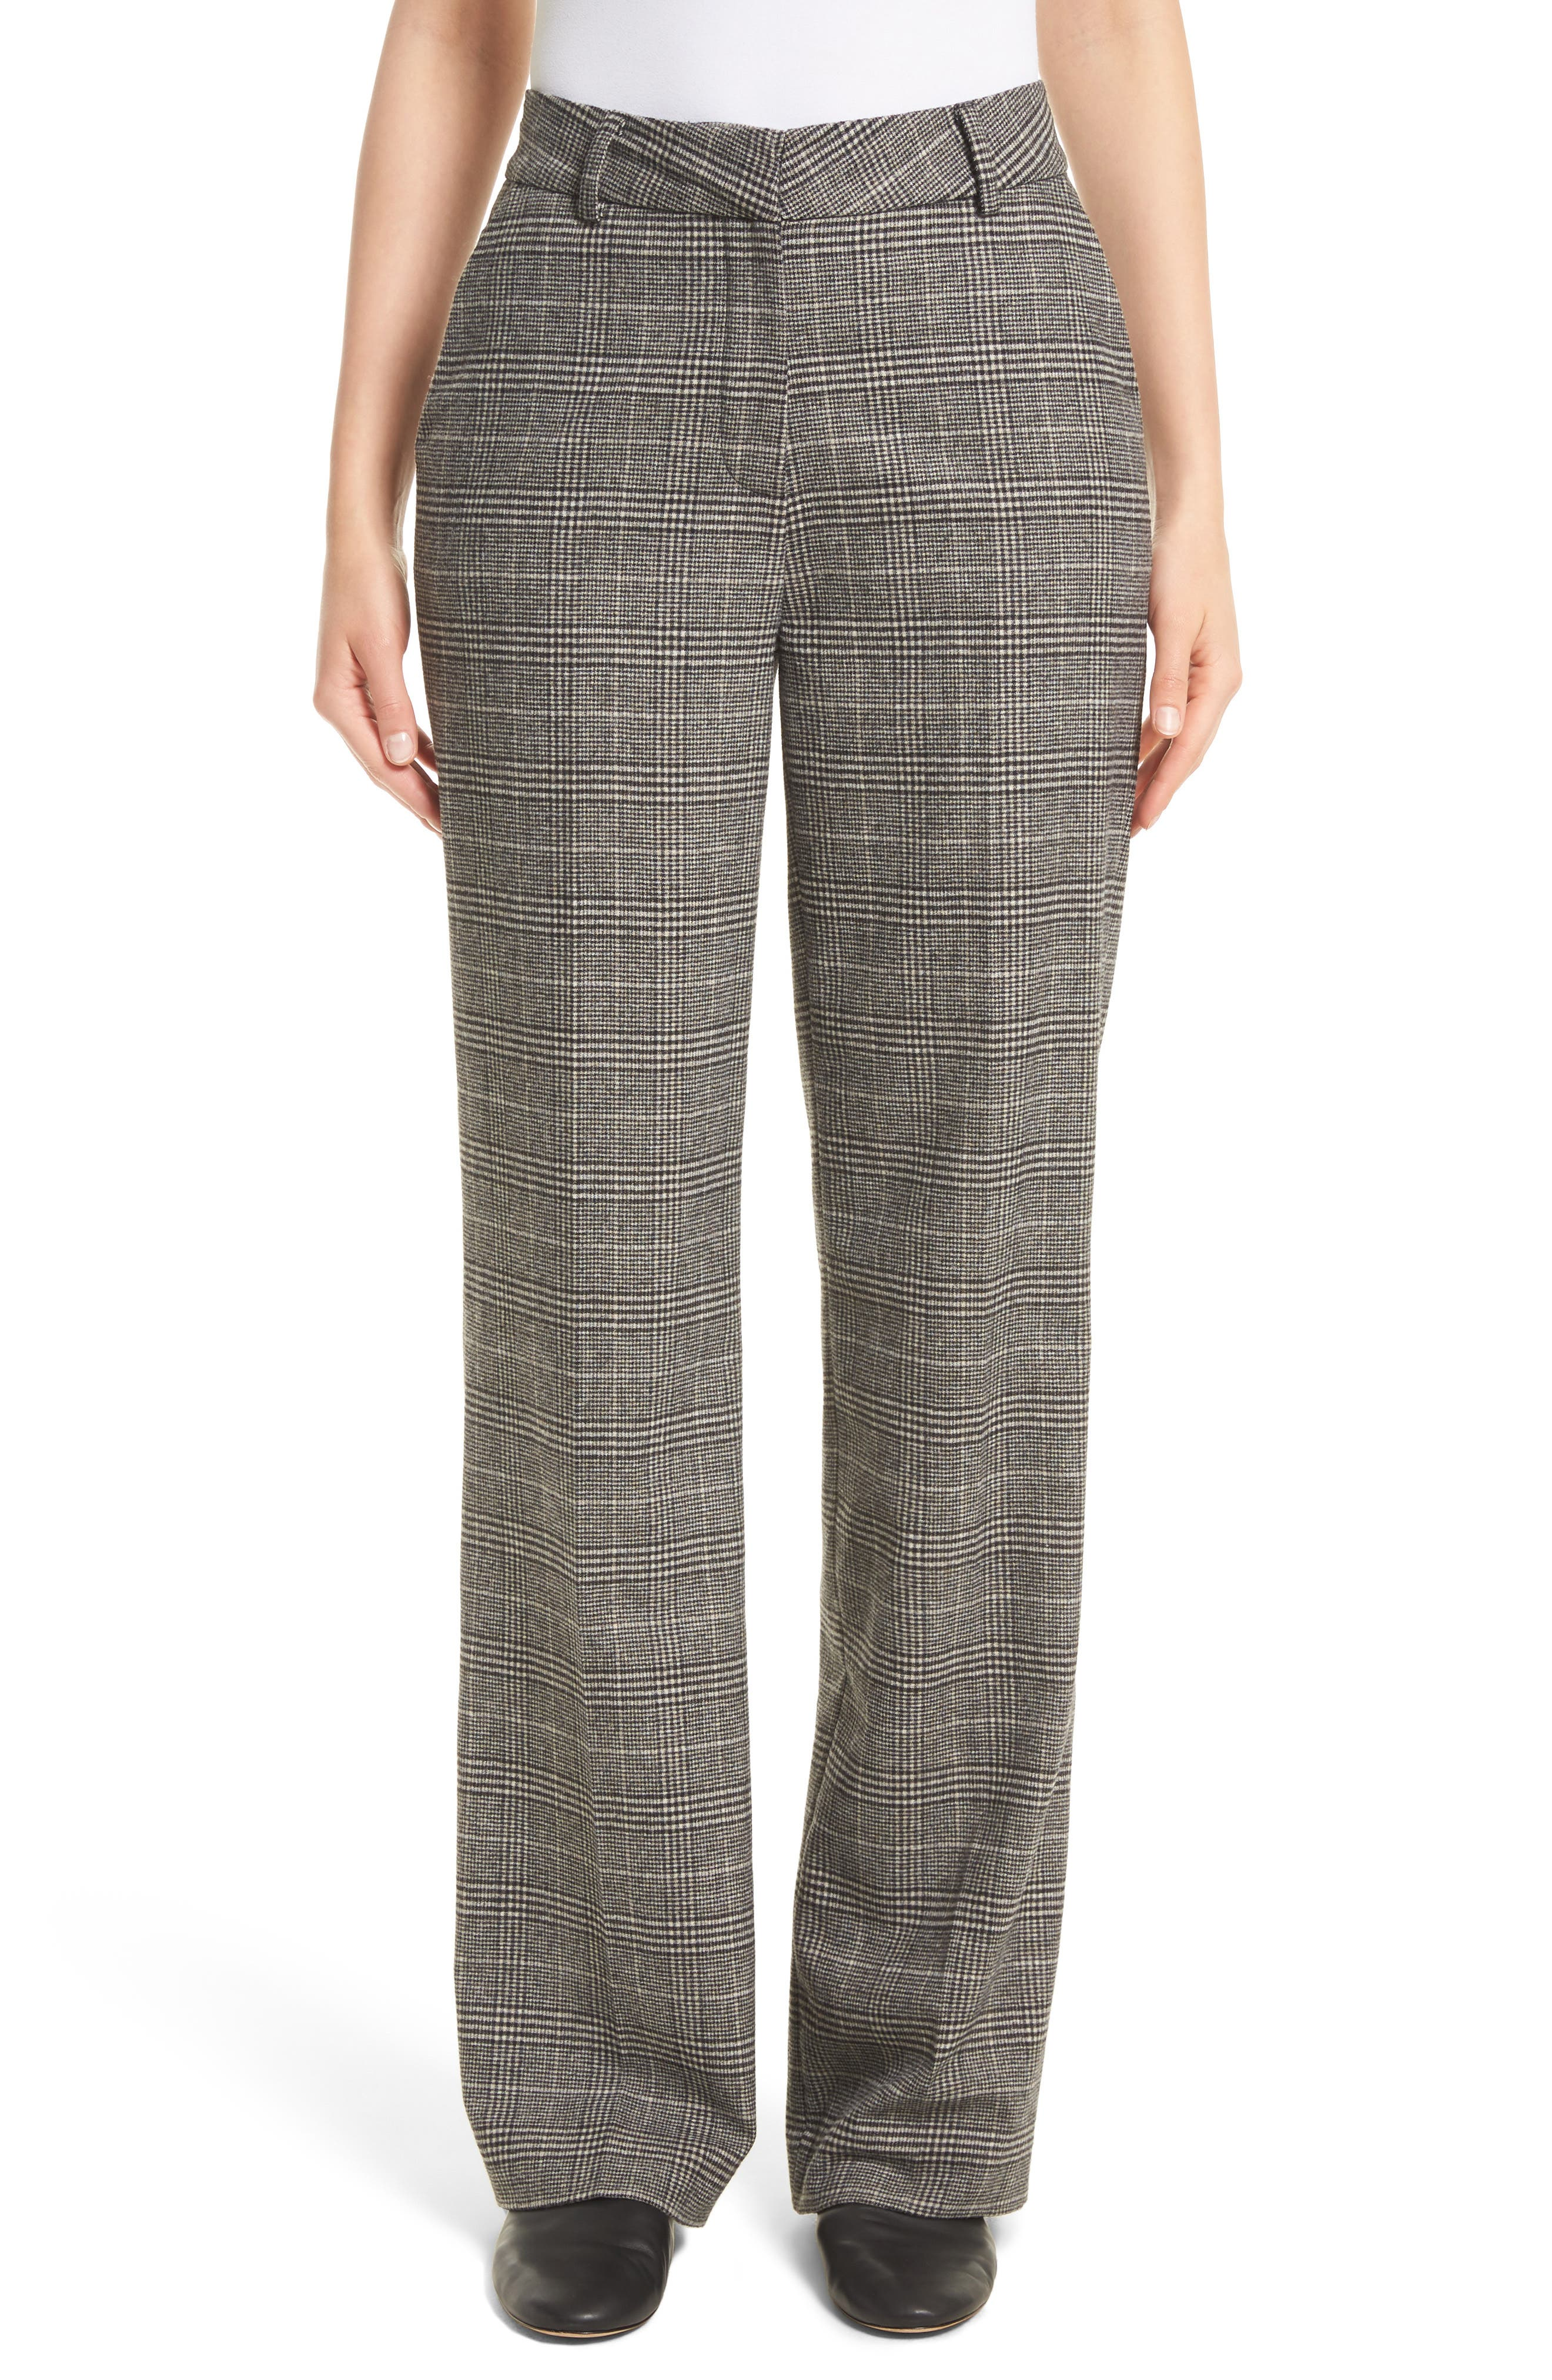 Joie Kaledas Plaid Pants